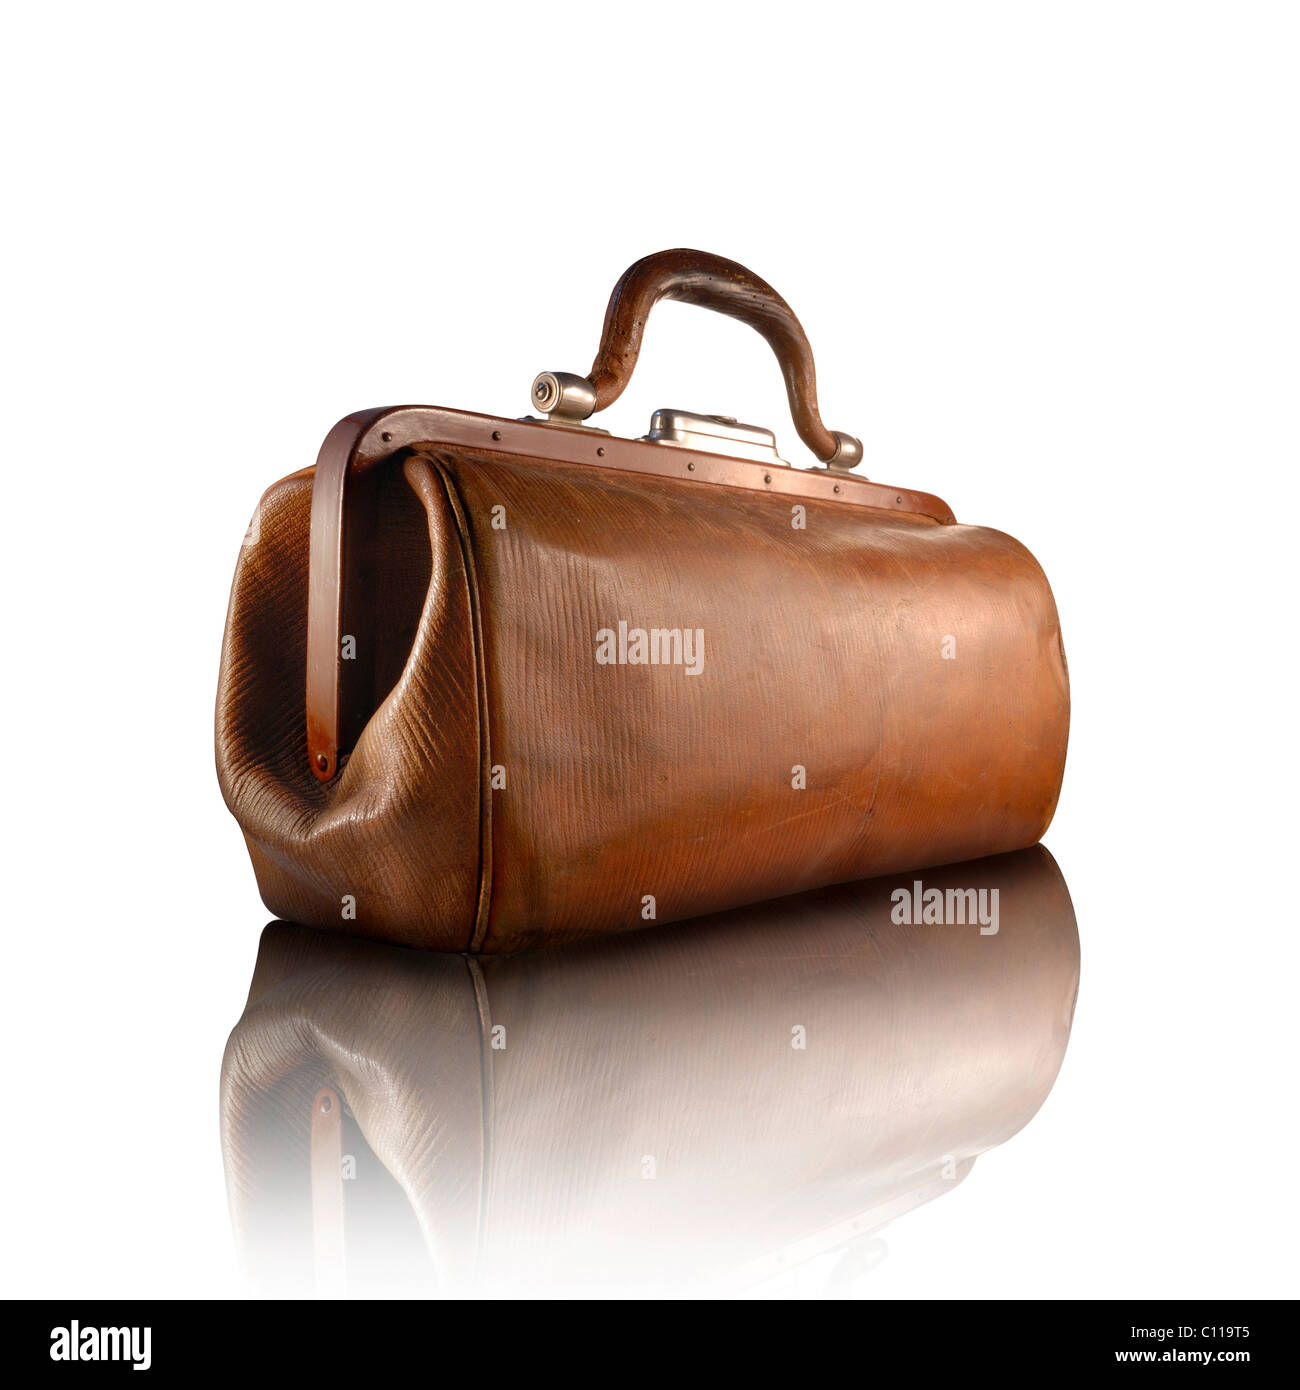 An old, brown doctor's bag - Stock Image